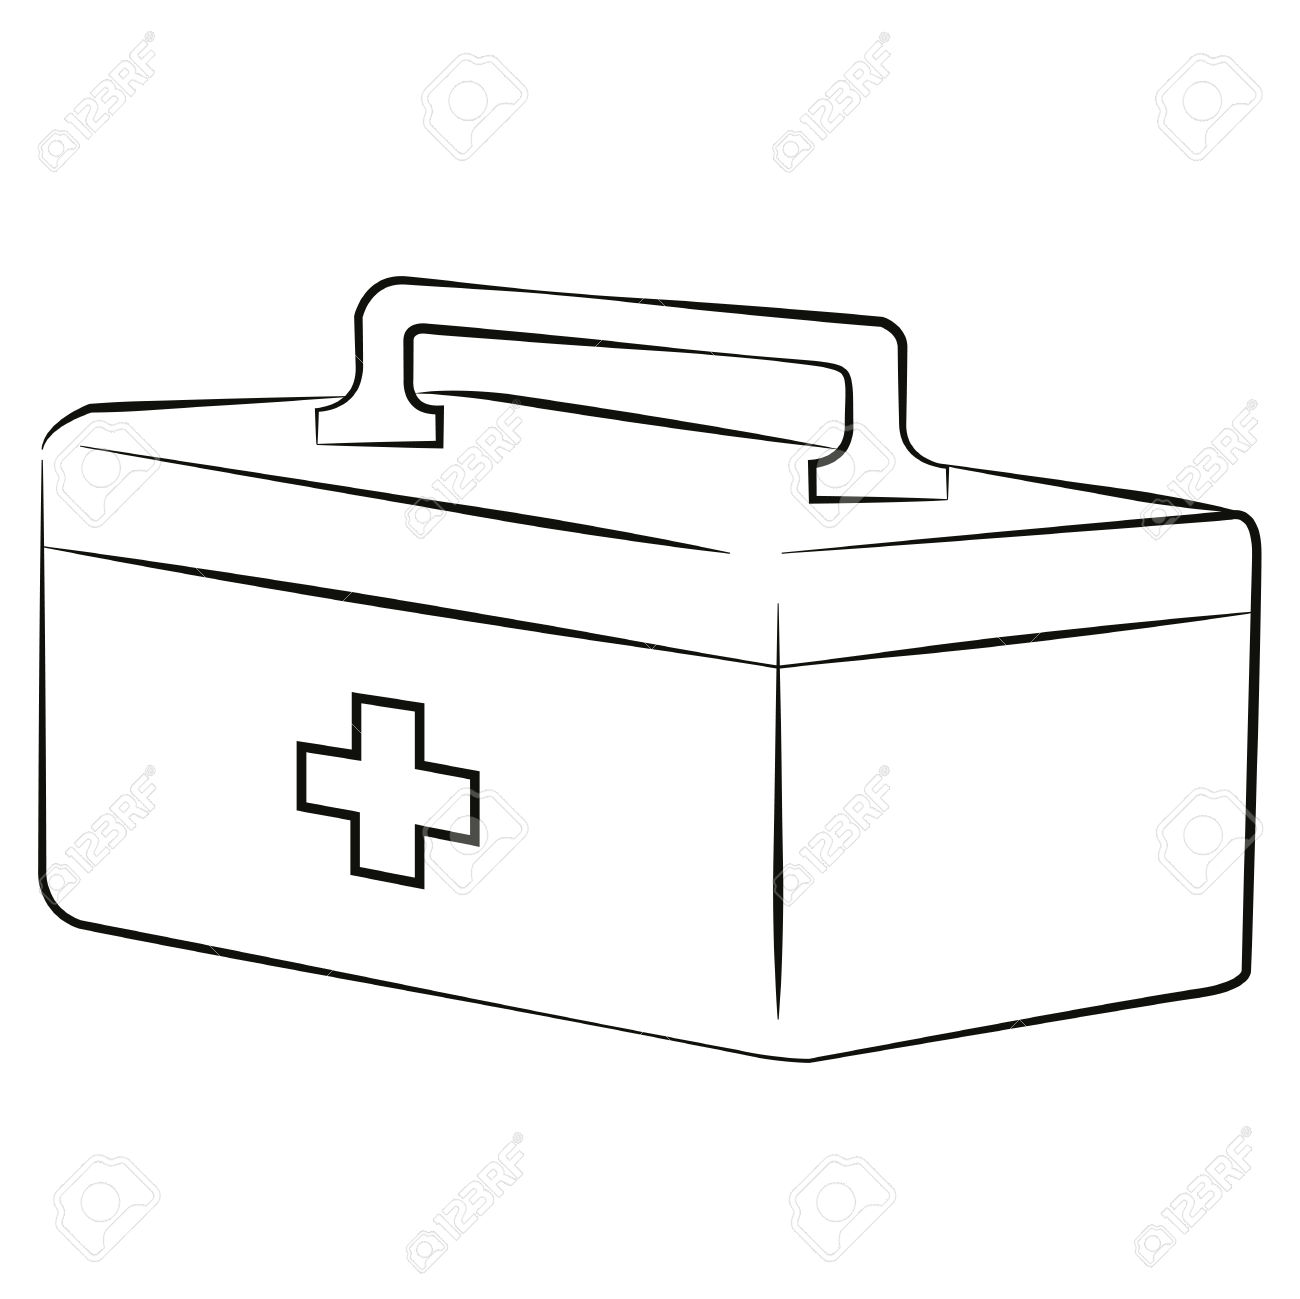 771 First Aid Kit free clipart.